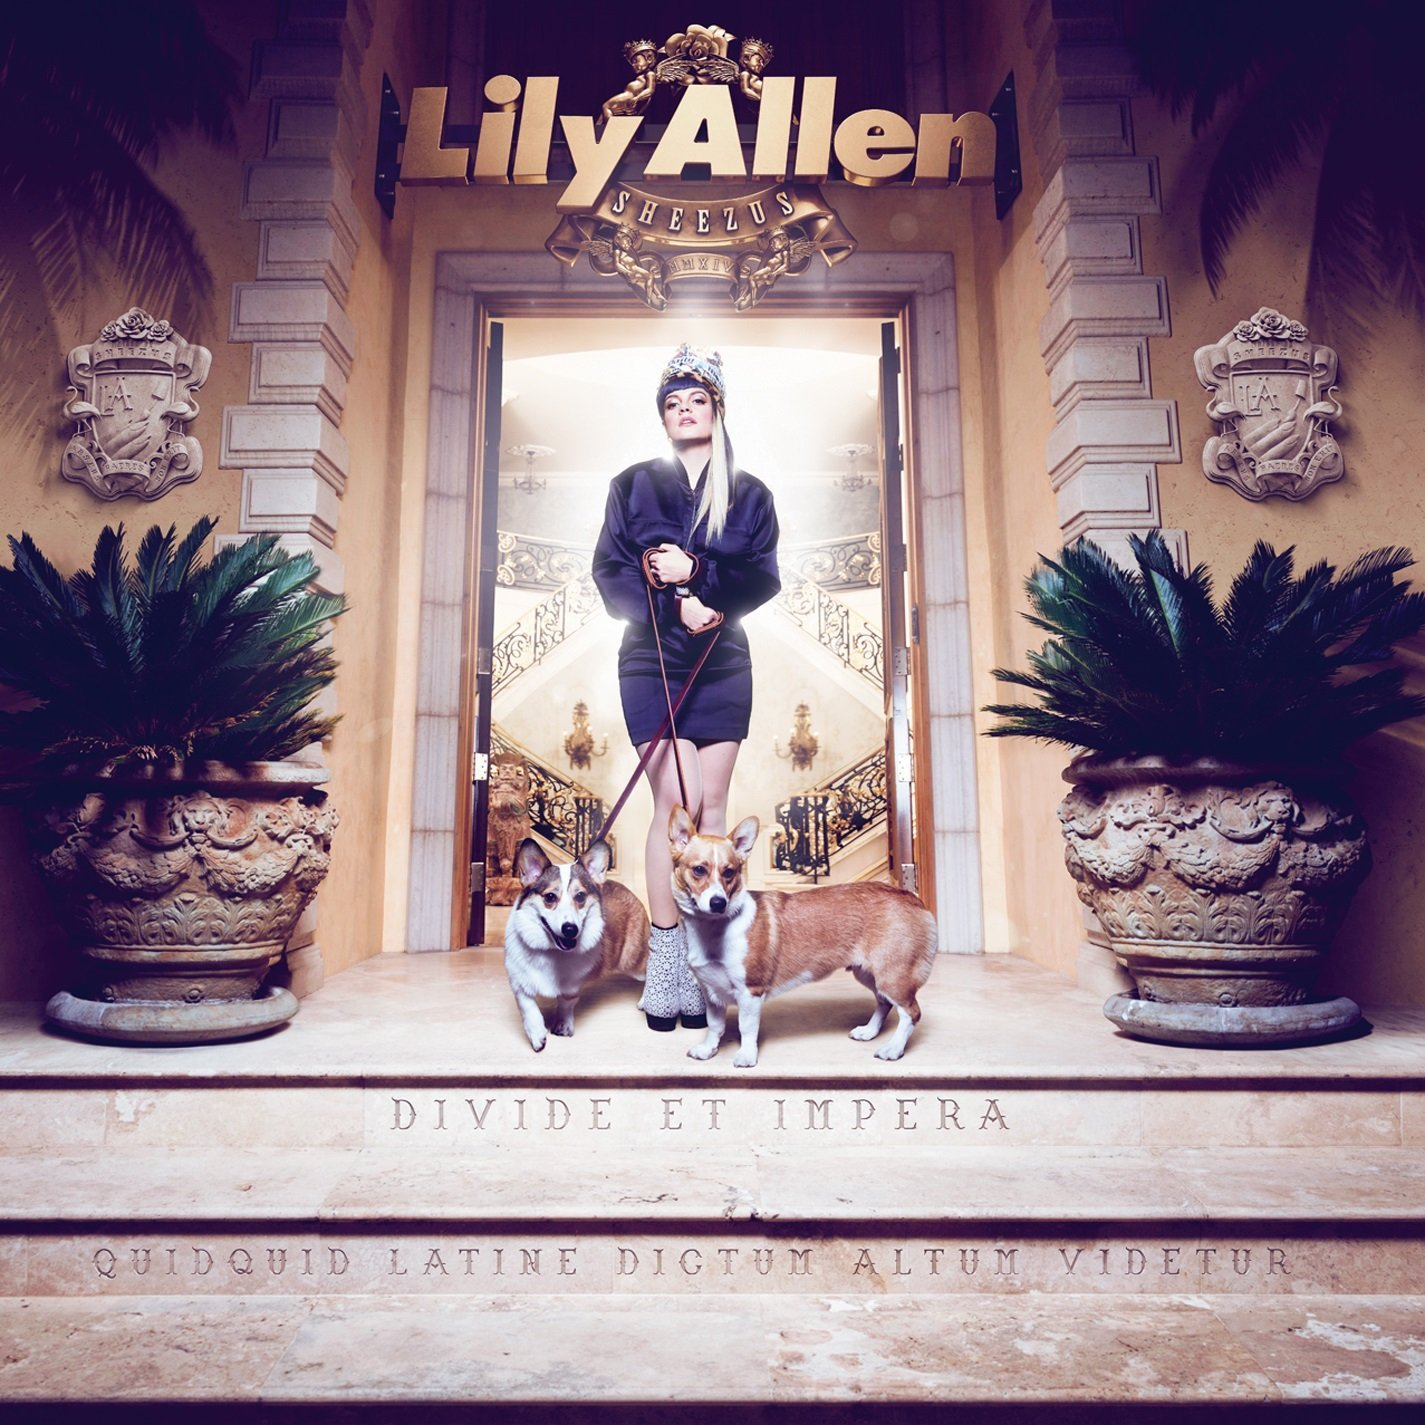 boom reviews - Sheezus by Lily Allen album cover